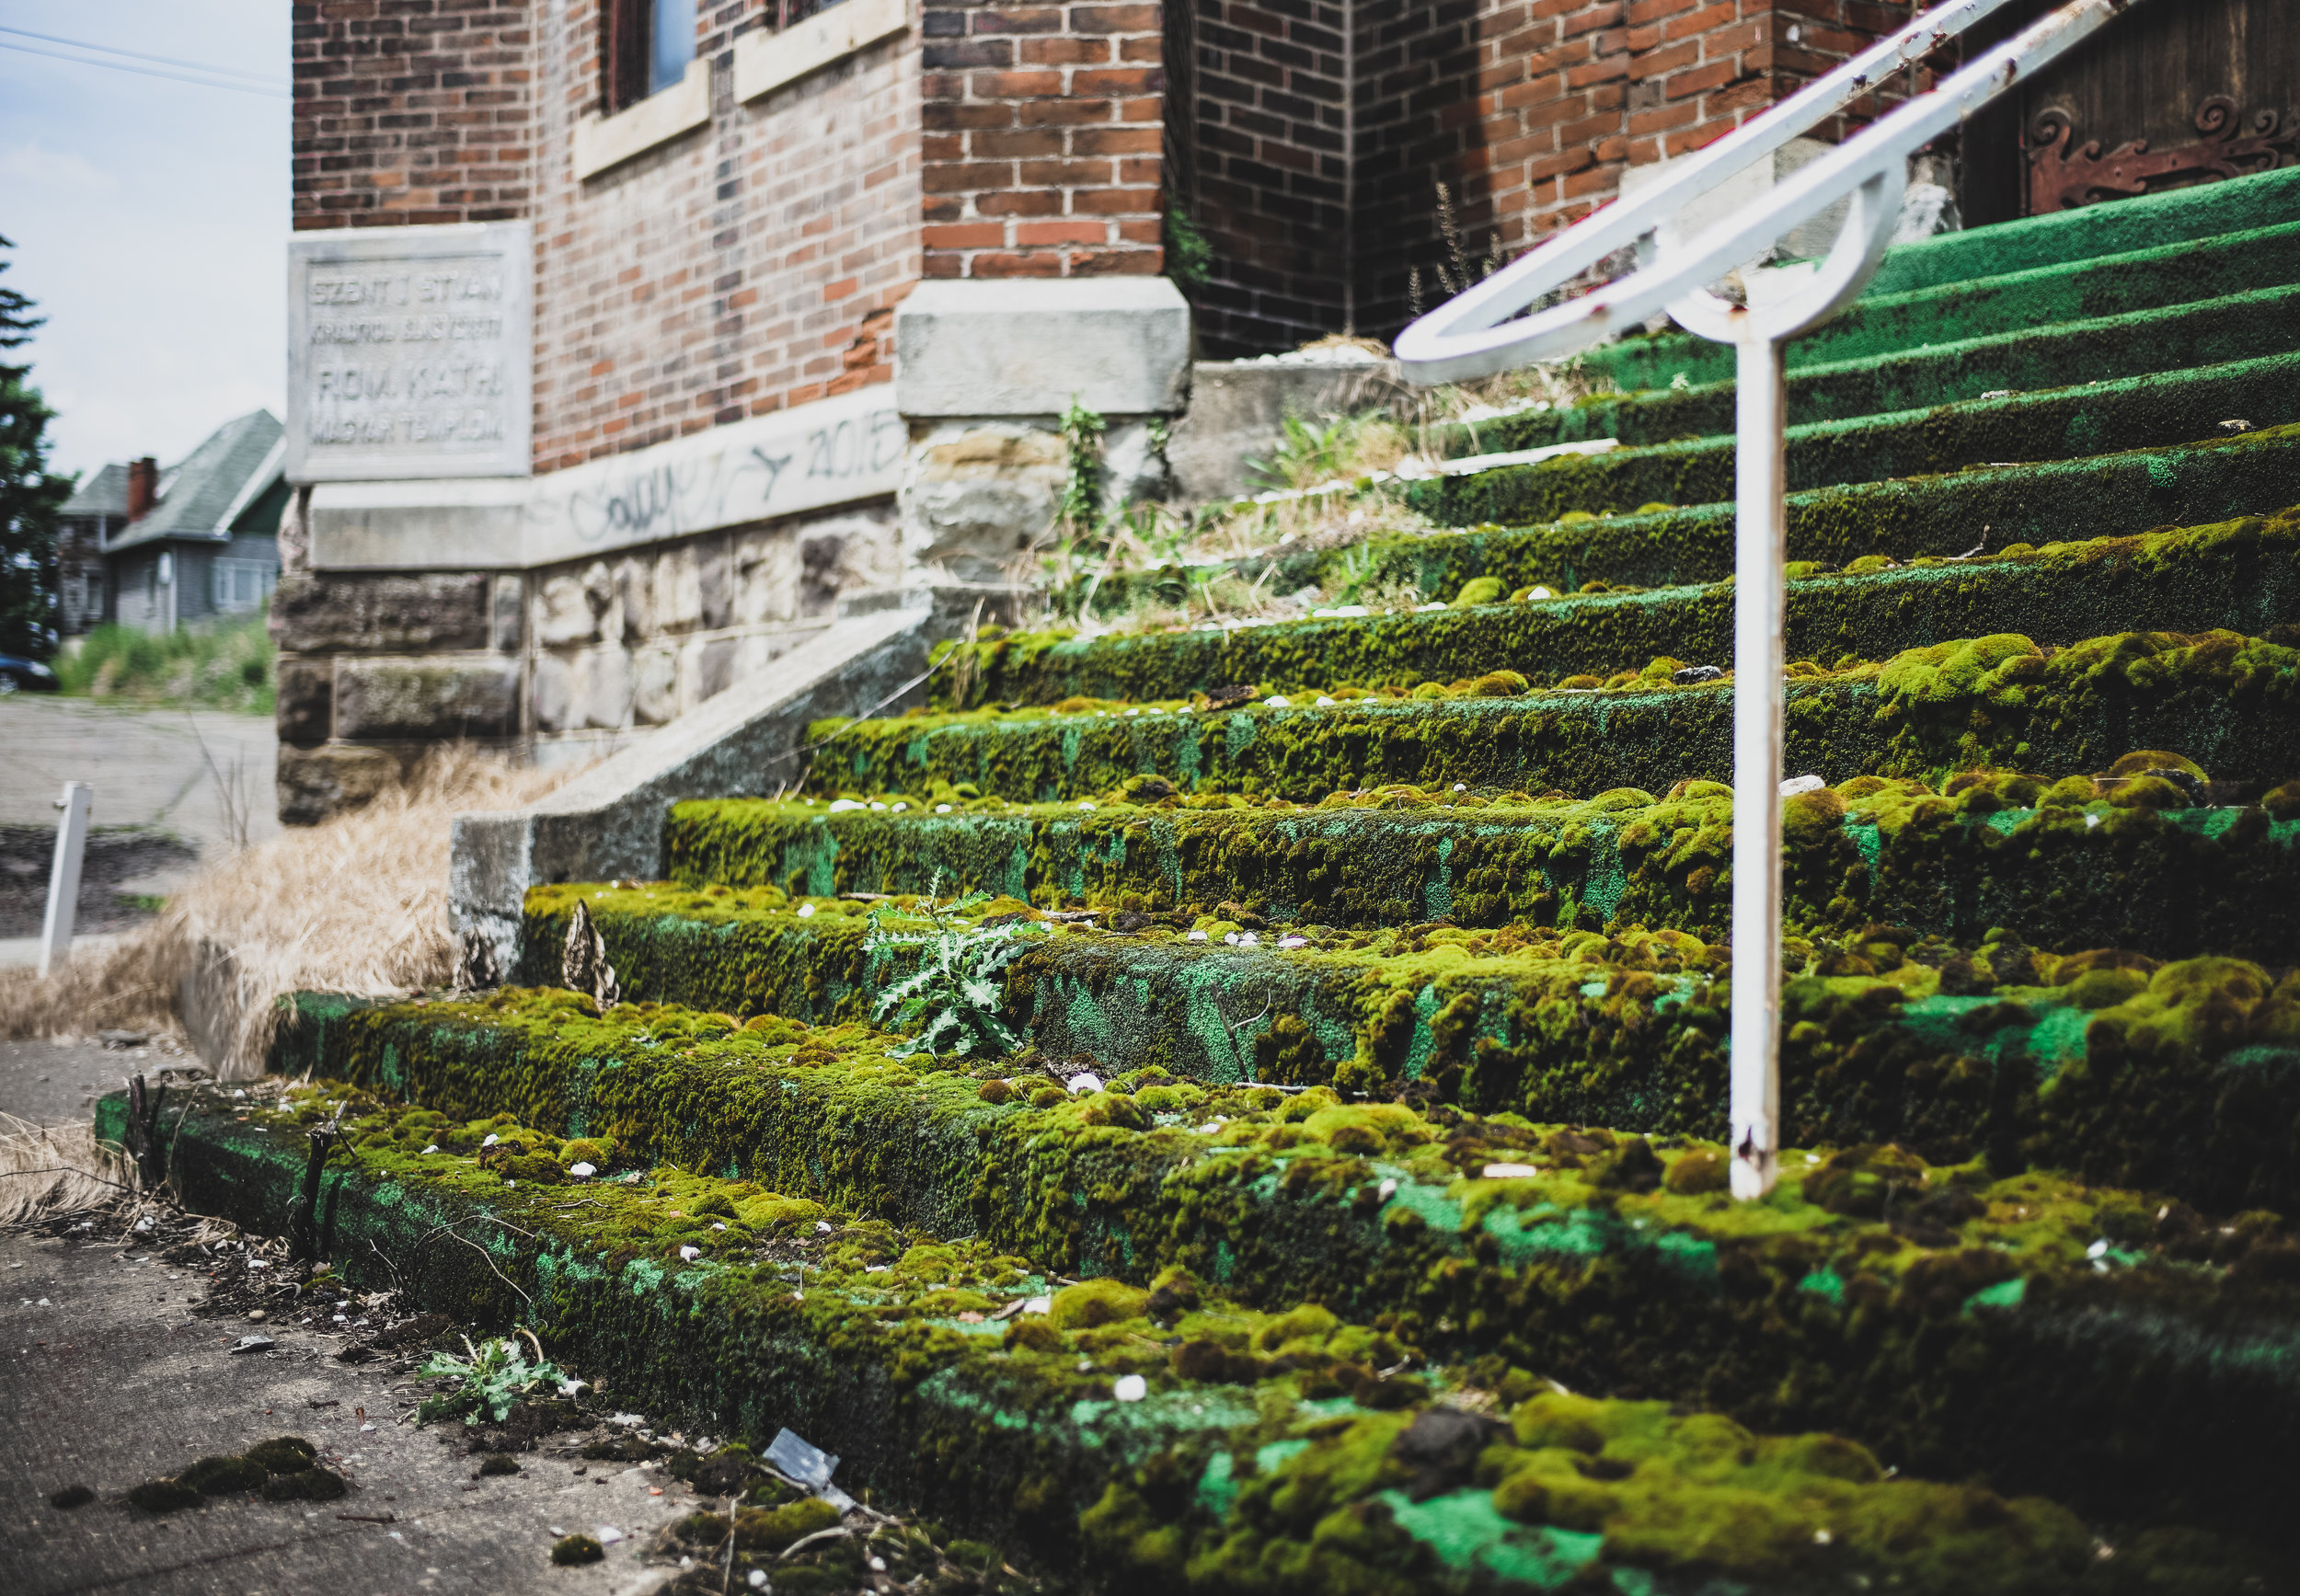 pictured above: moss grows on the front steps of the church. kinda creepy/cool and radioactive looking!